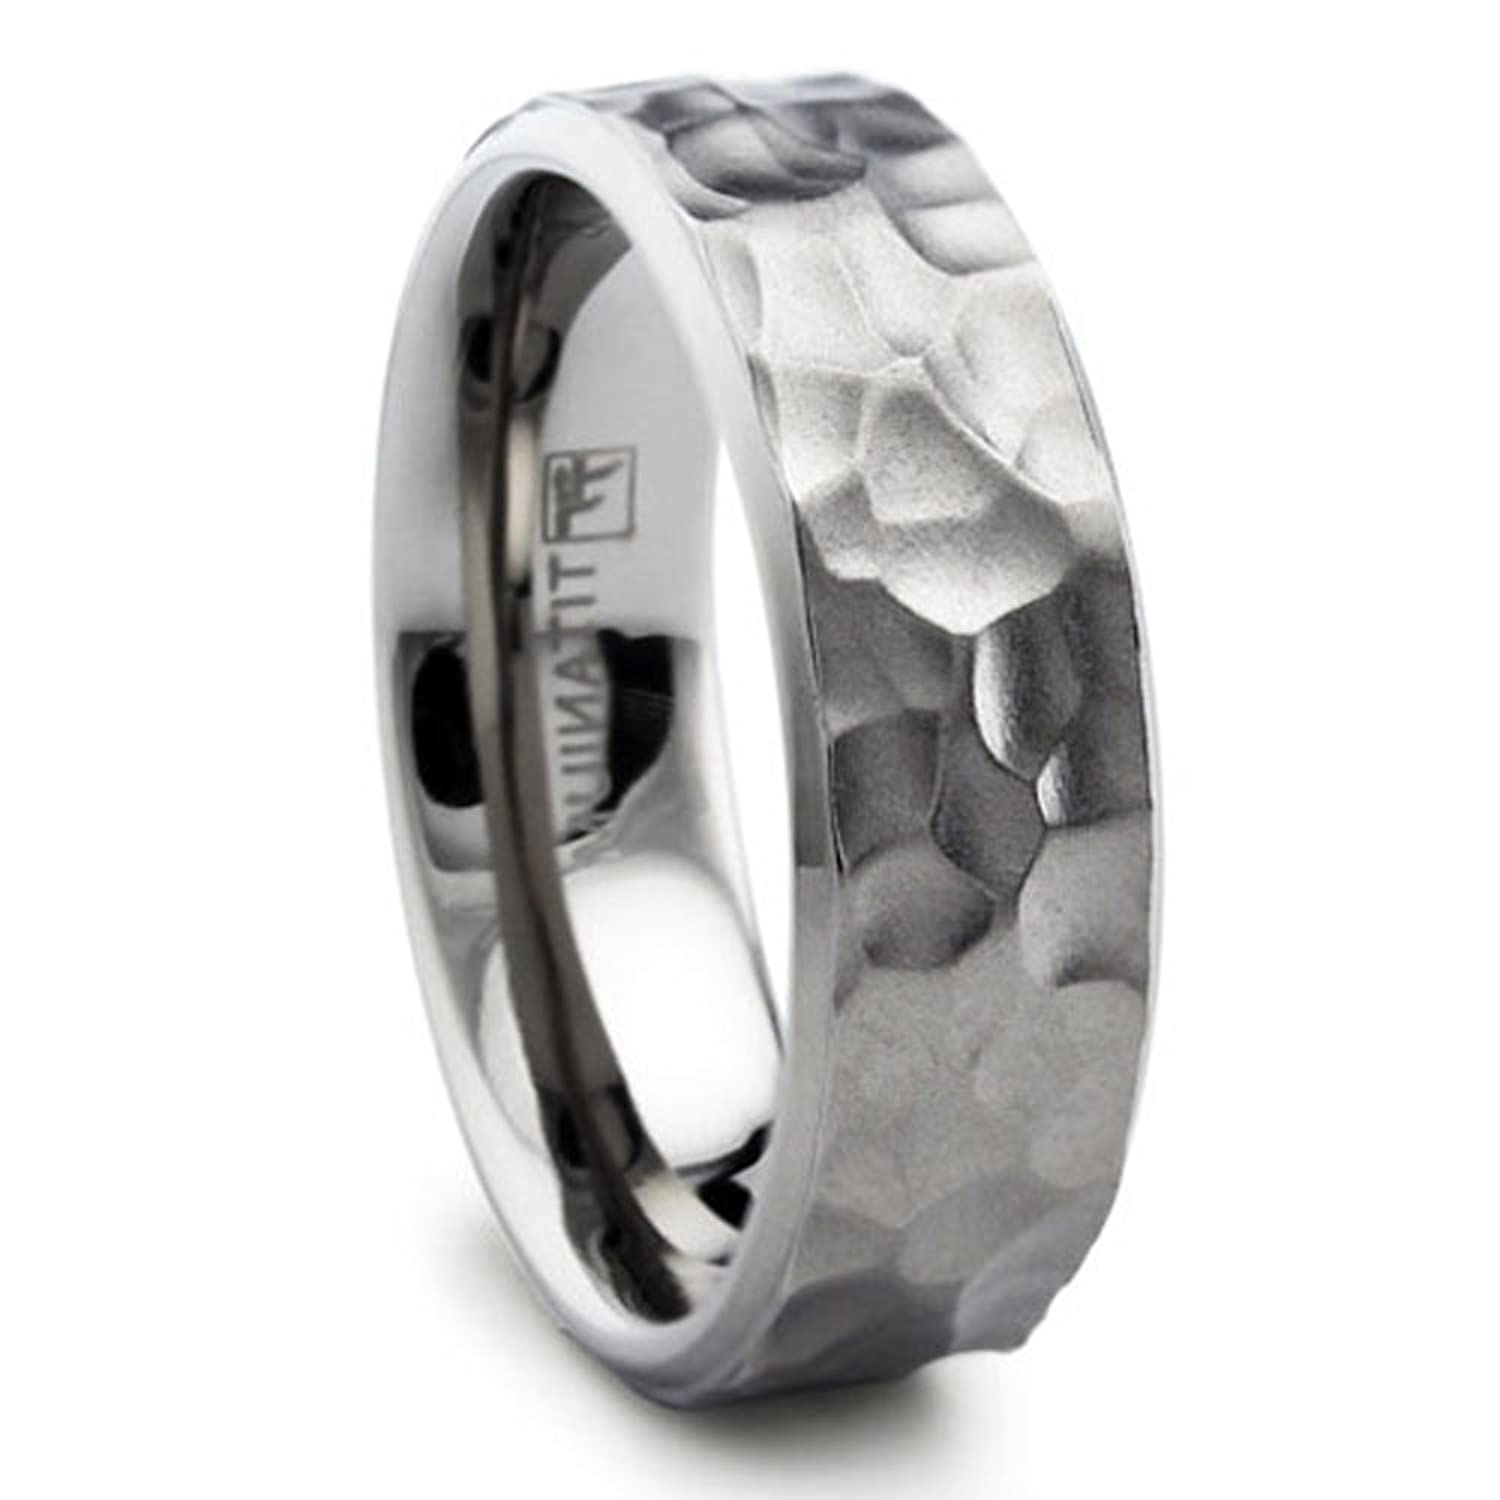 rings titanium band bands wedding degree ring loading men grain wood s mens zoom home